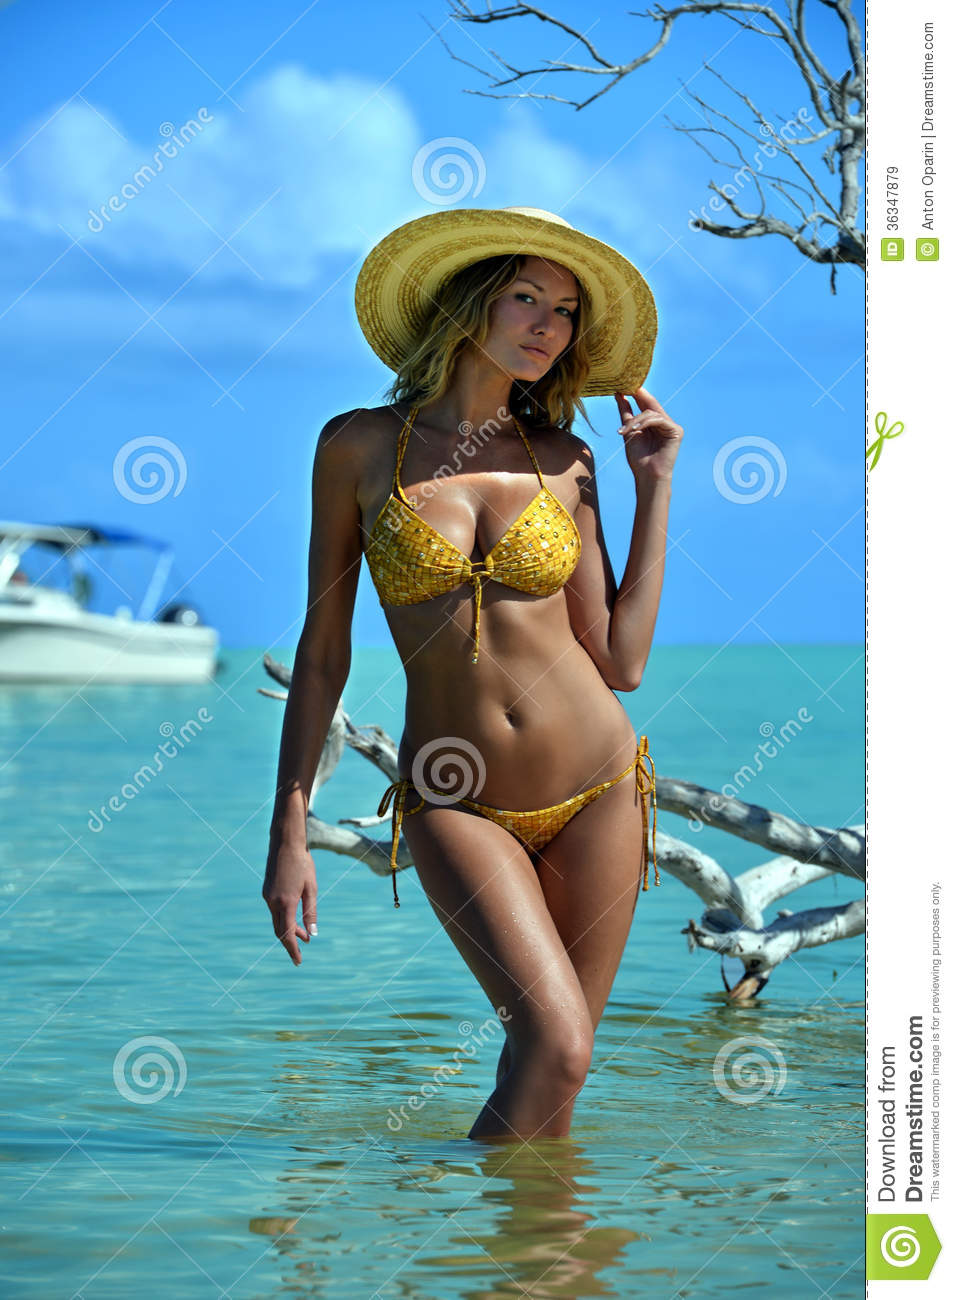 Bikini Model In Straw Hat Posing In Front Of Camera At Tropical Beach Location Stock Image ...